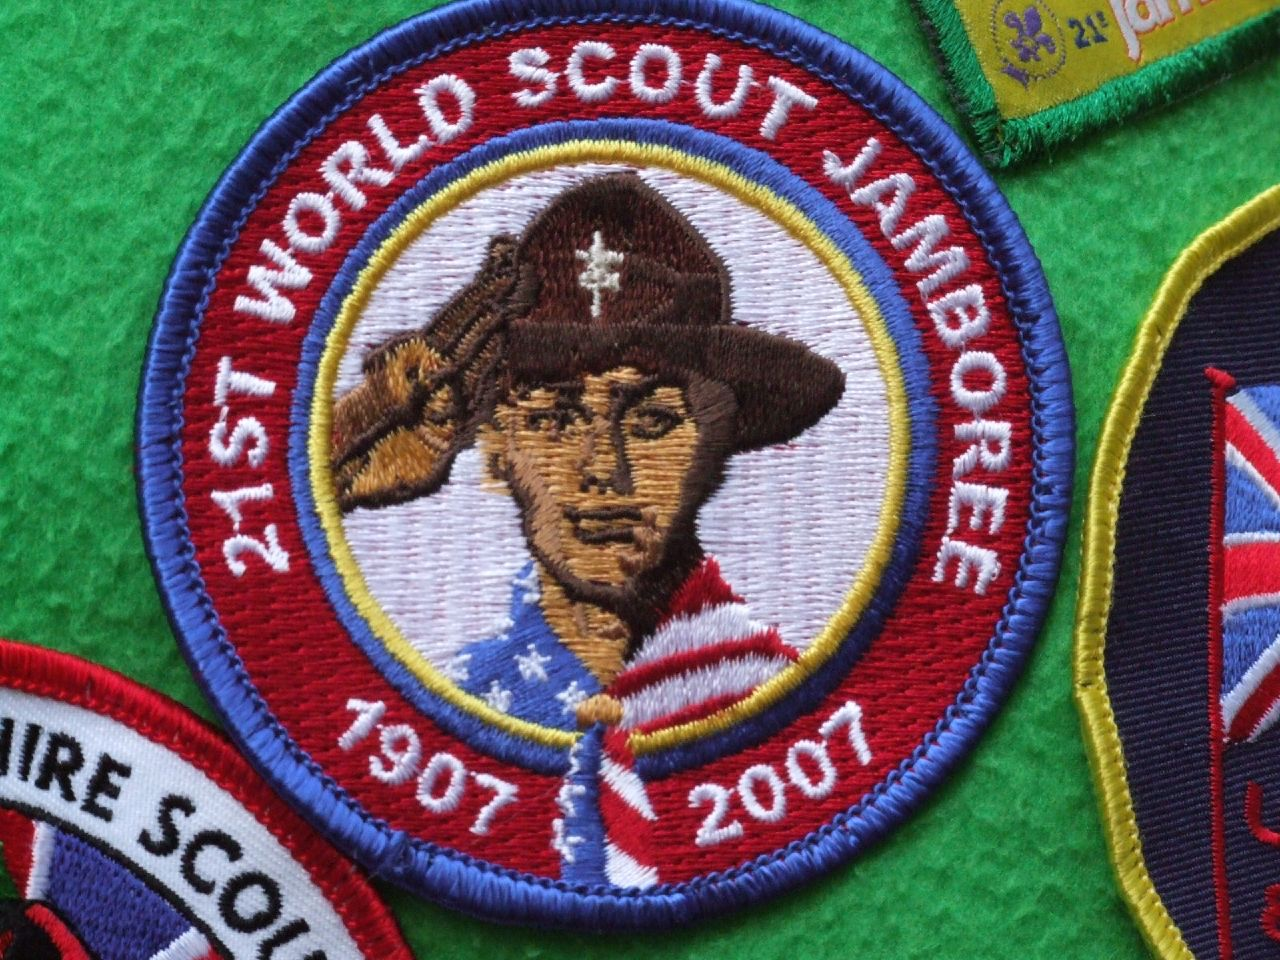 Badges: Are we all in the scouts again?